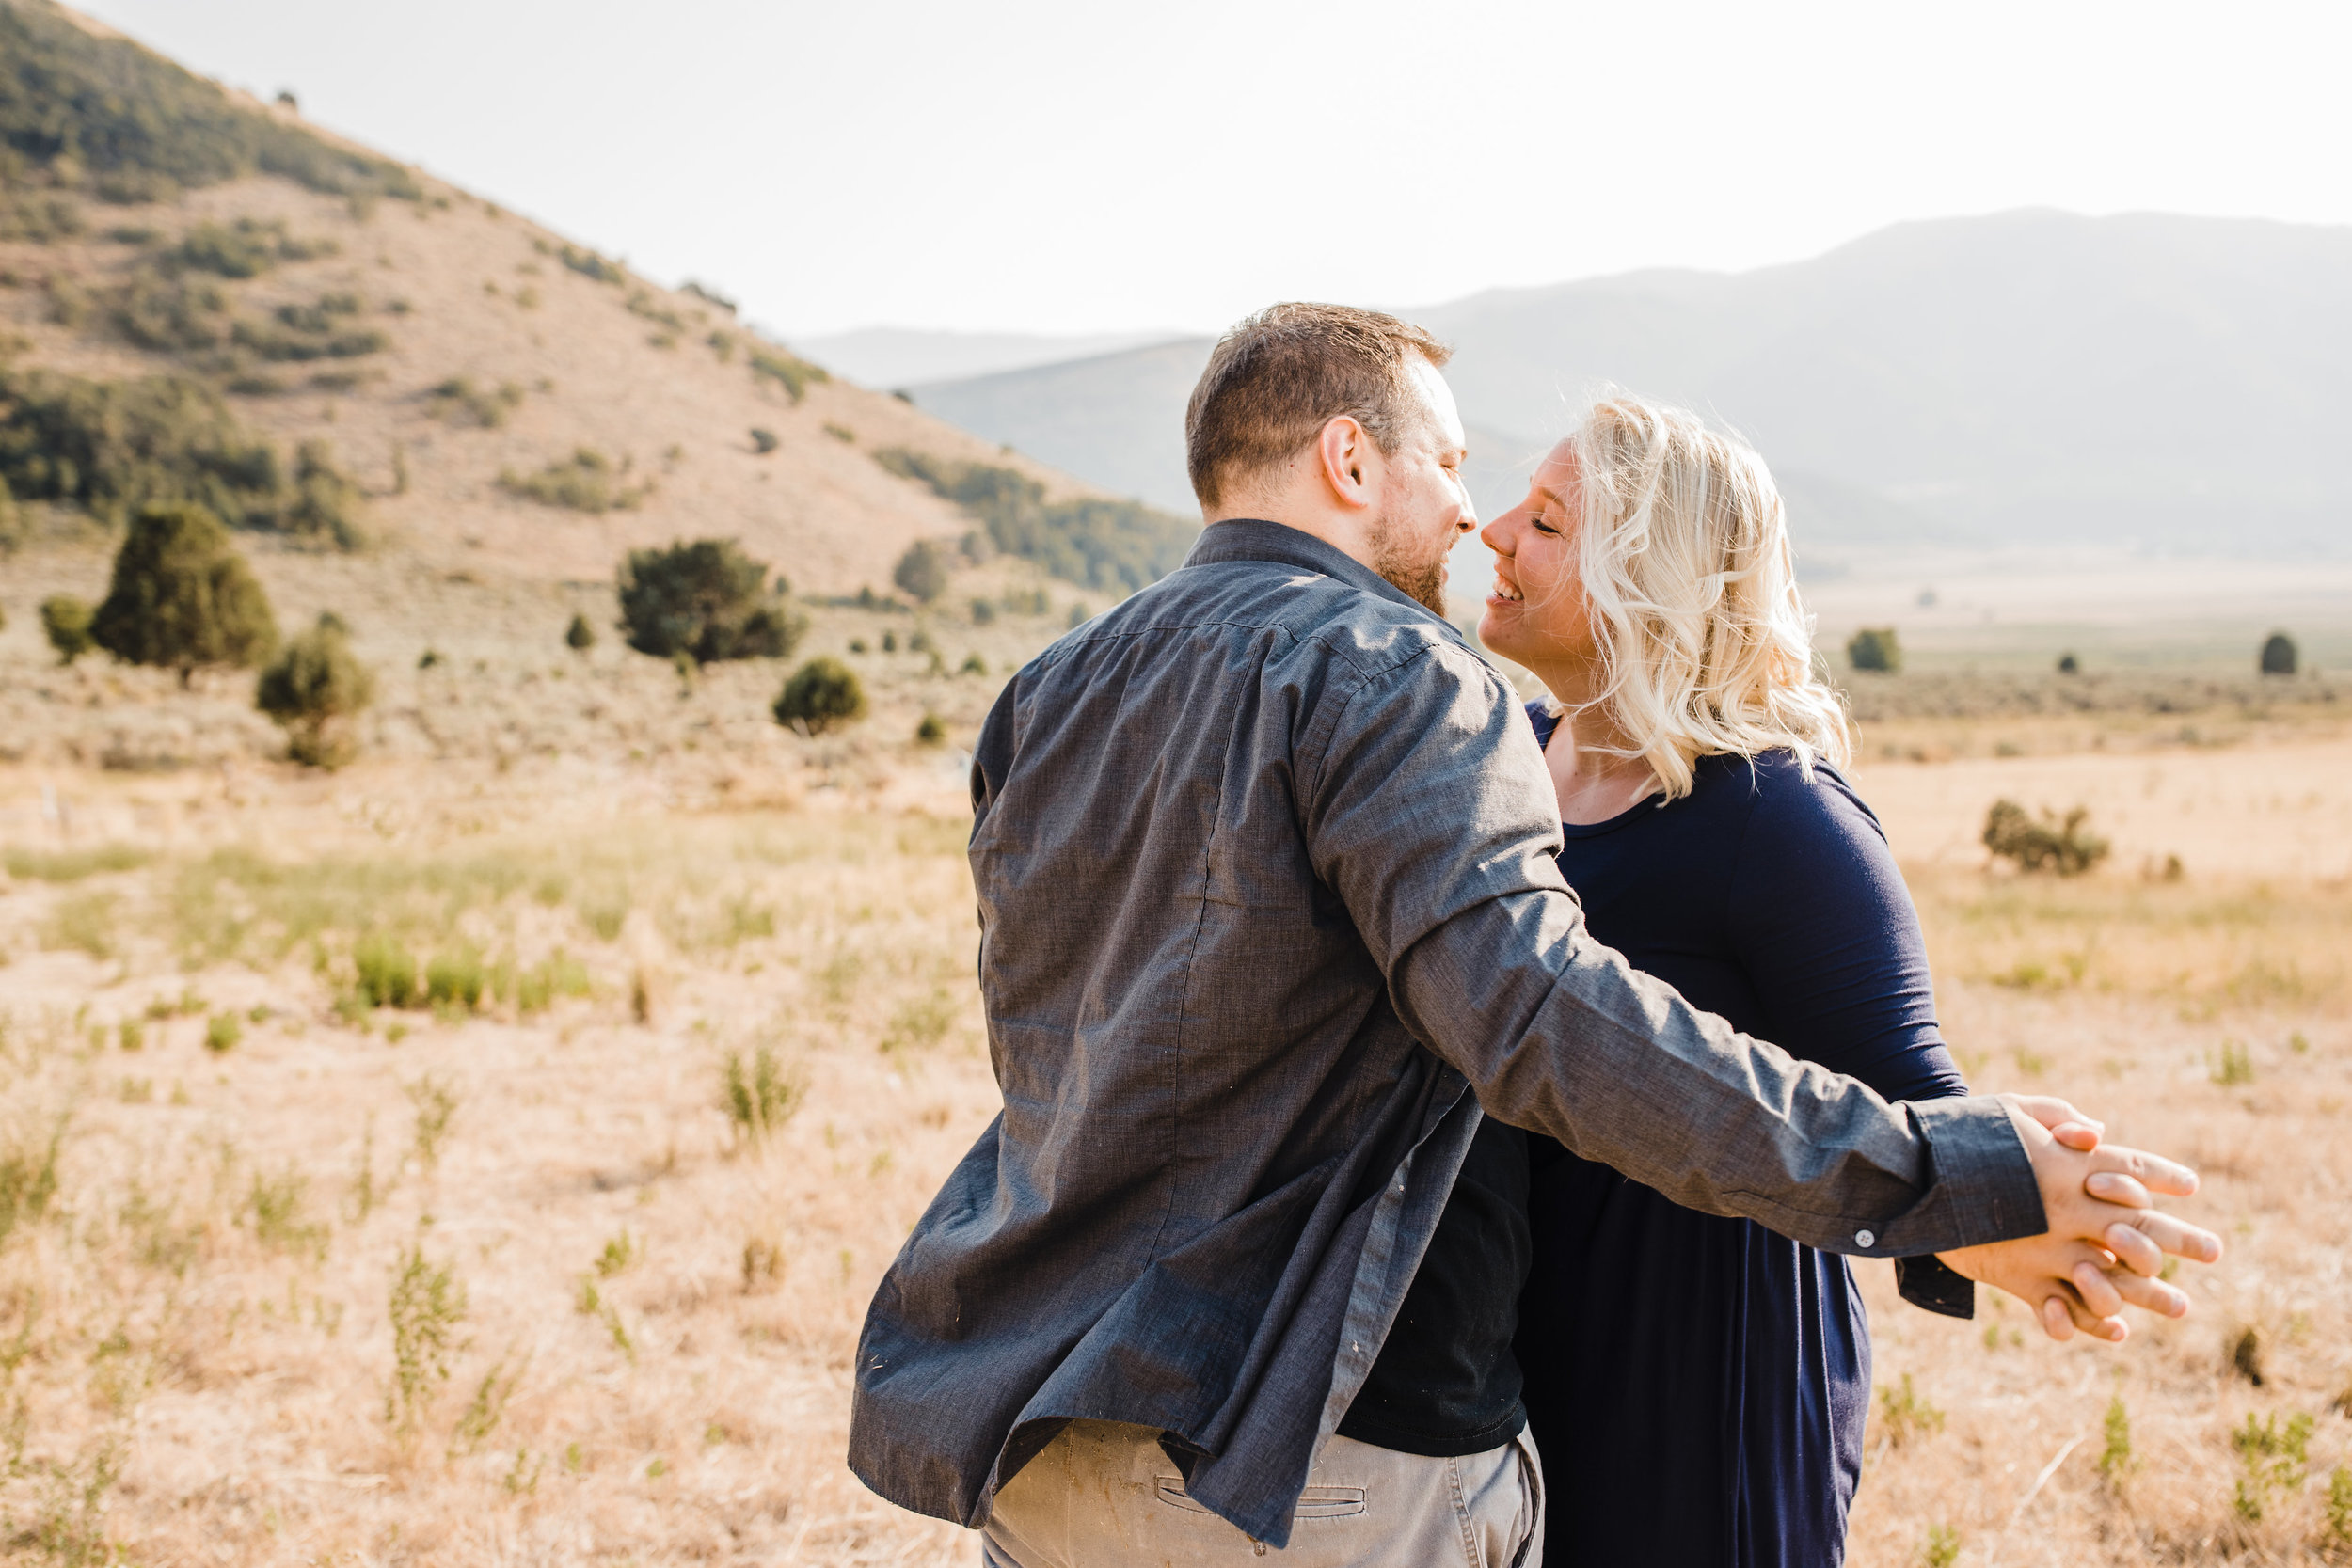 mantua utah engagement photographer mountain backdrop slow dancing laughing windblown